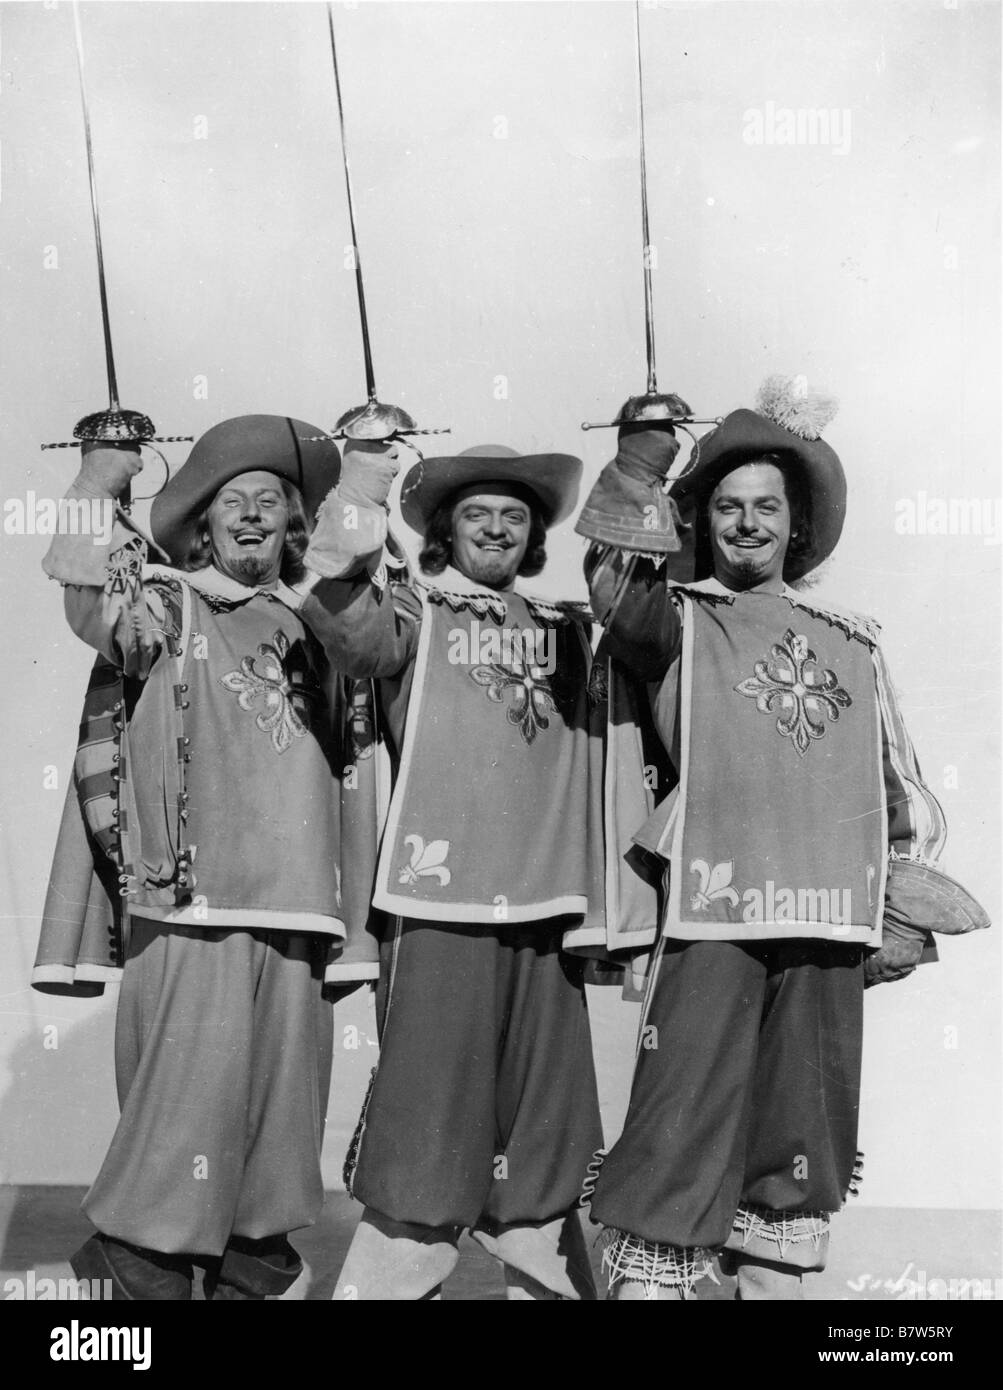 The Three Types Of Totalitarian Systems: Les Trois Mousquetaires The Three Musketeers Année 1948